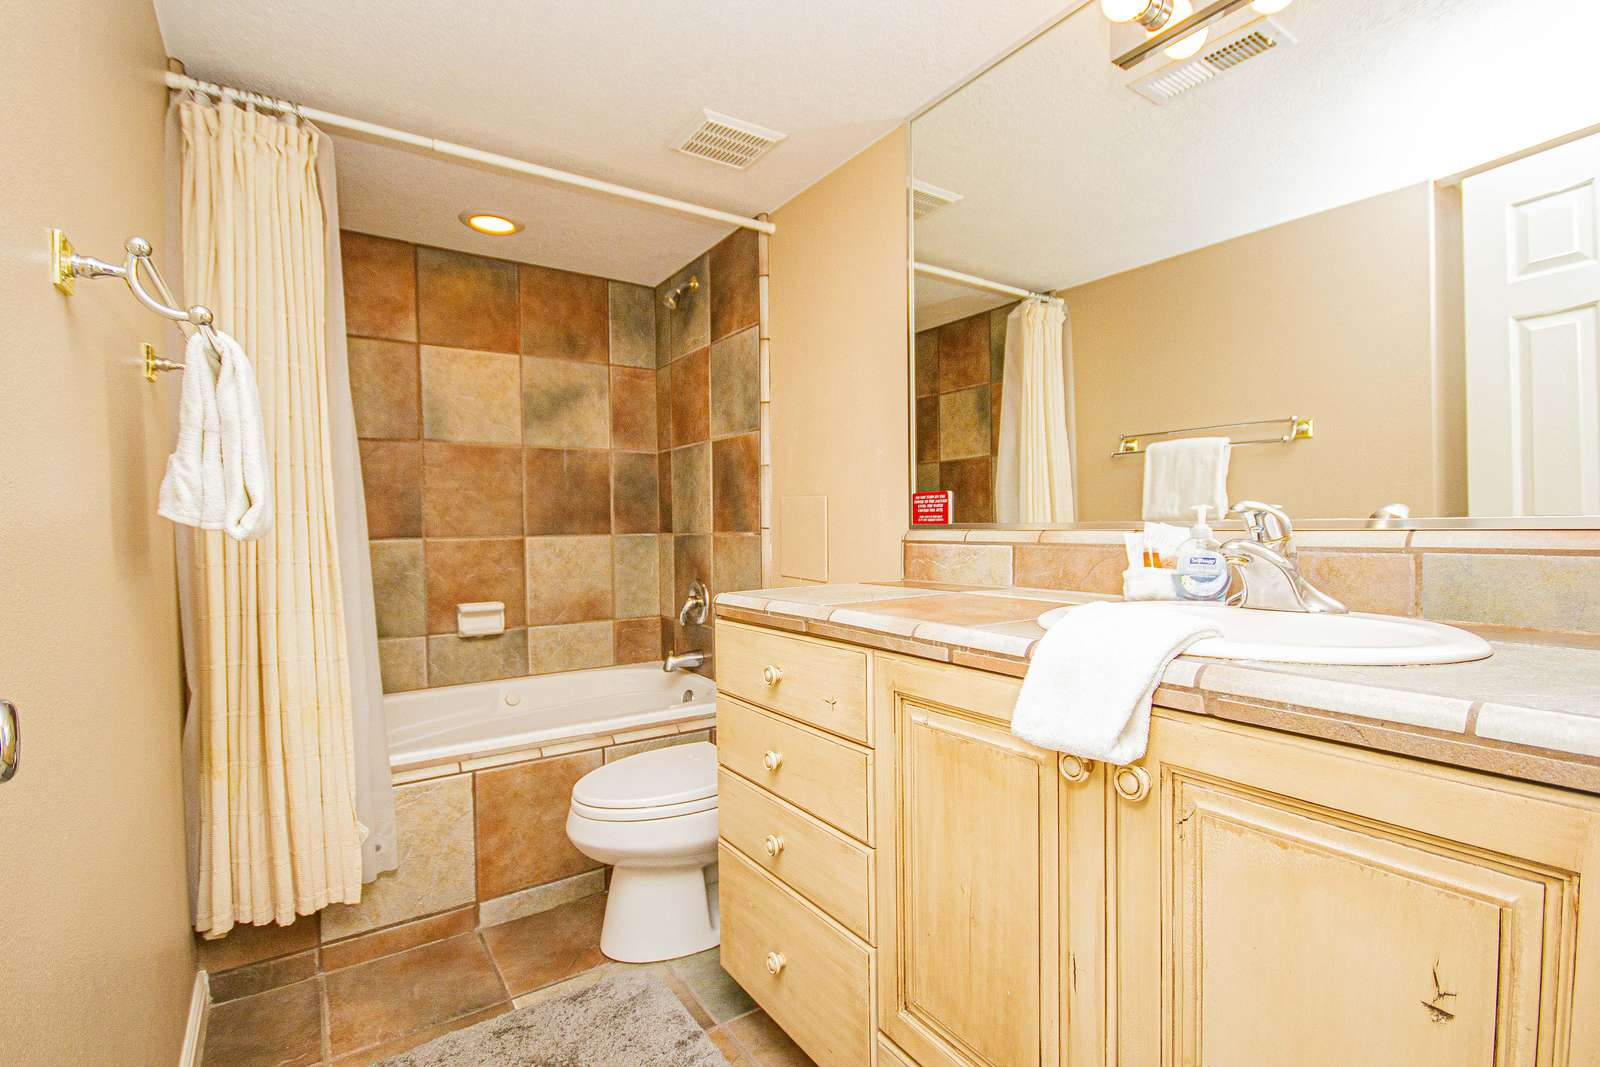 Bathroom 2 - Jetted Tub / Shower Combo